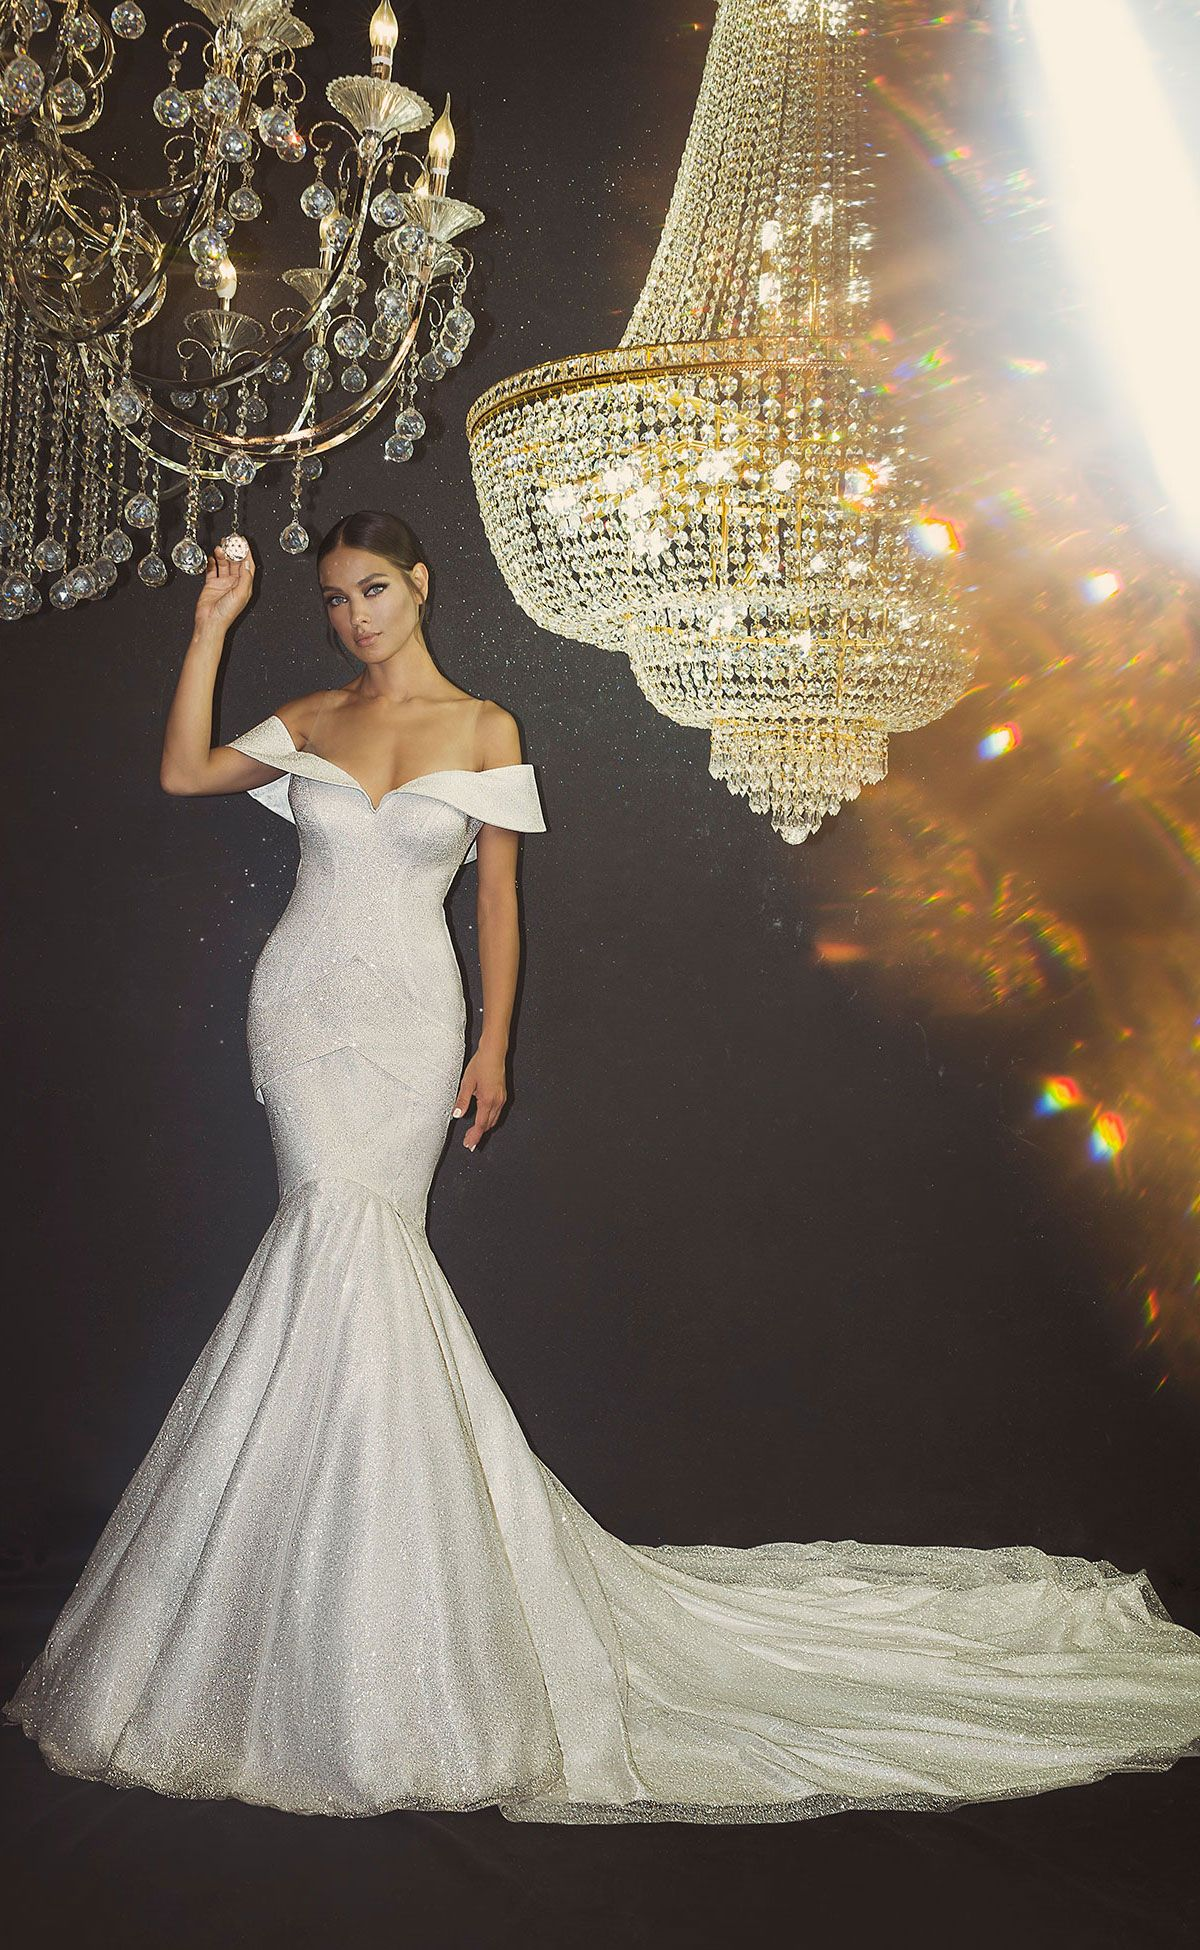 41 Incredibly Gorgeous Mermaid Wedding Dresses With Incredible Elegance Details